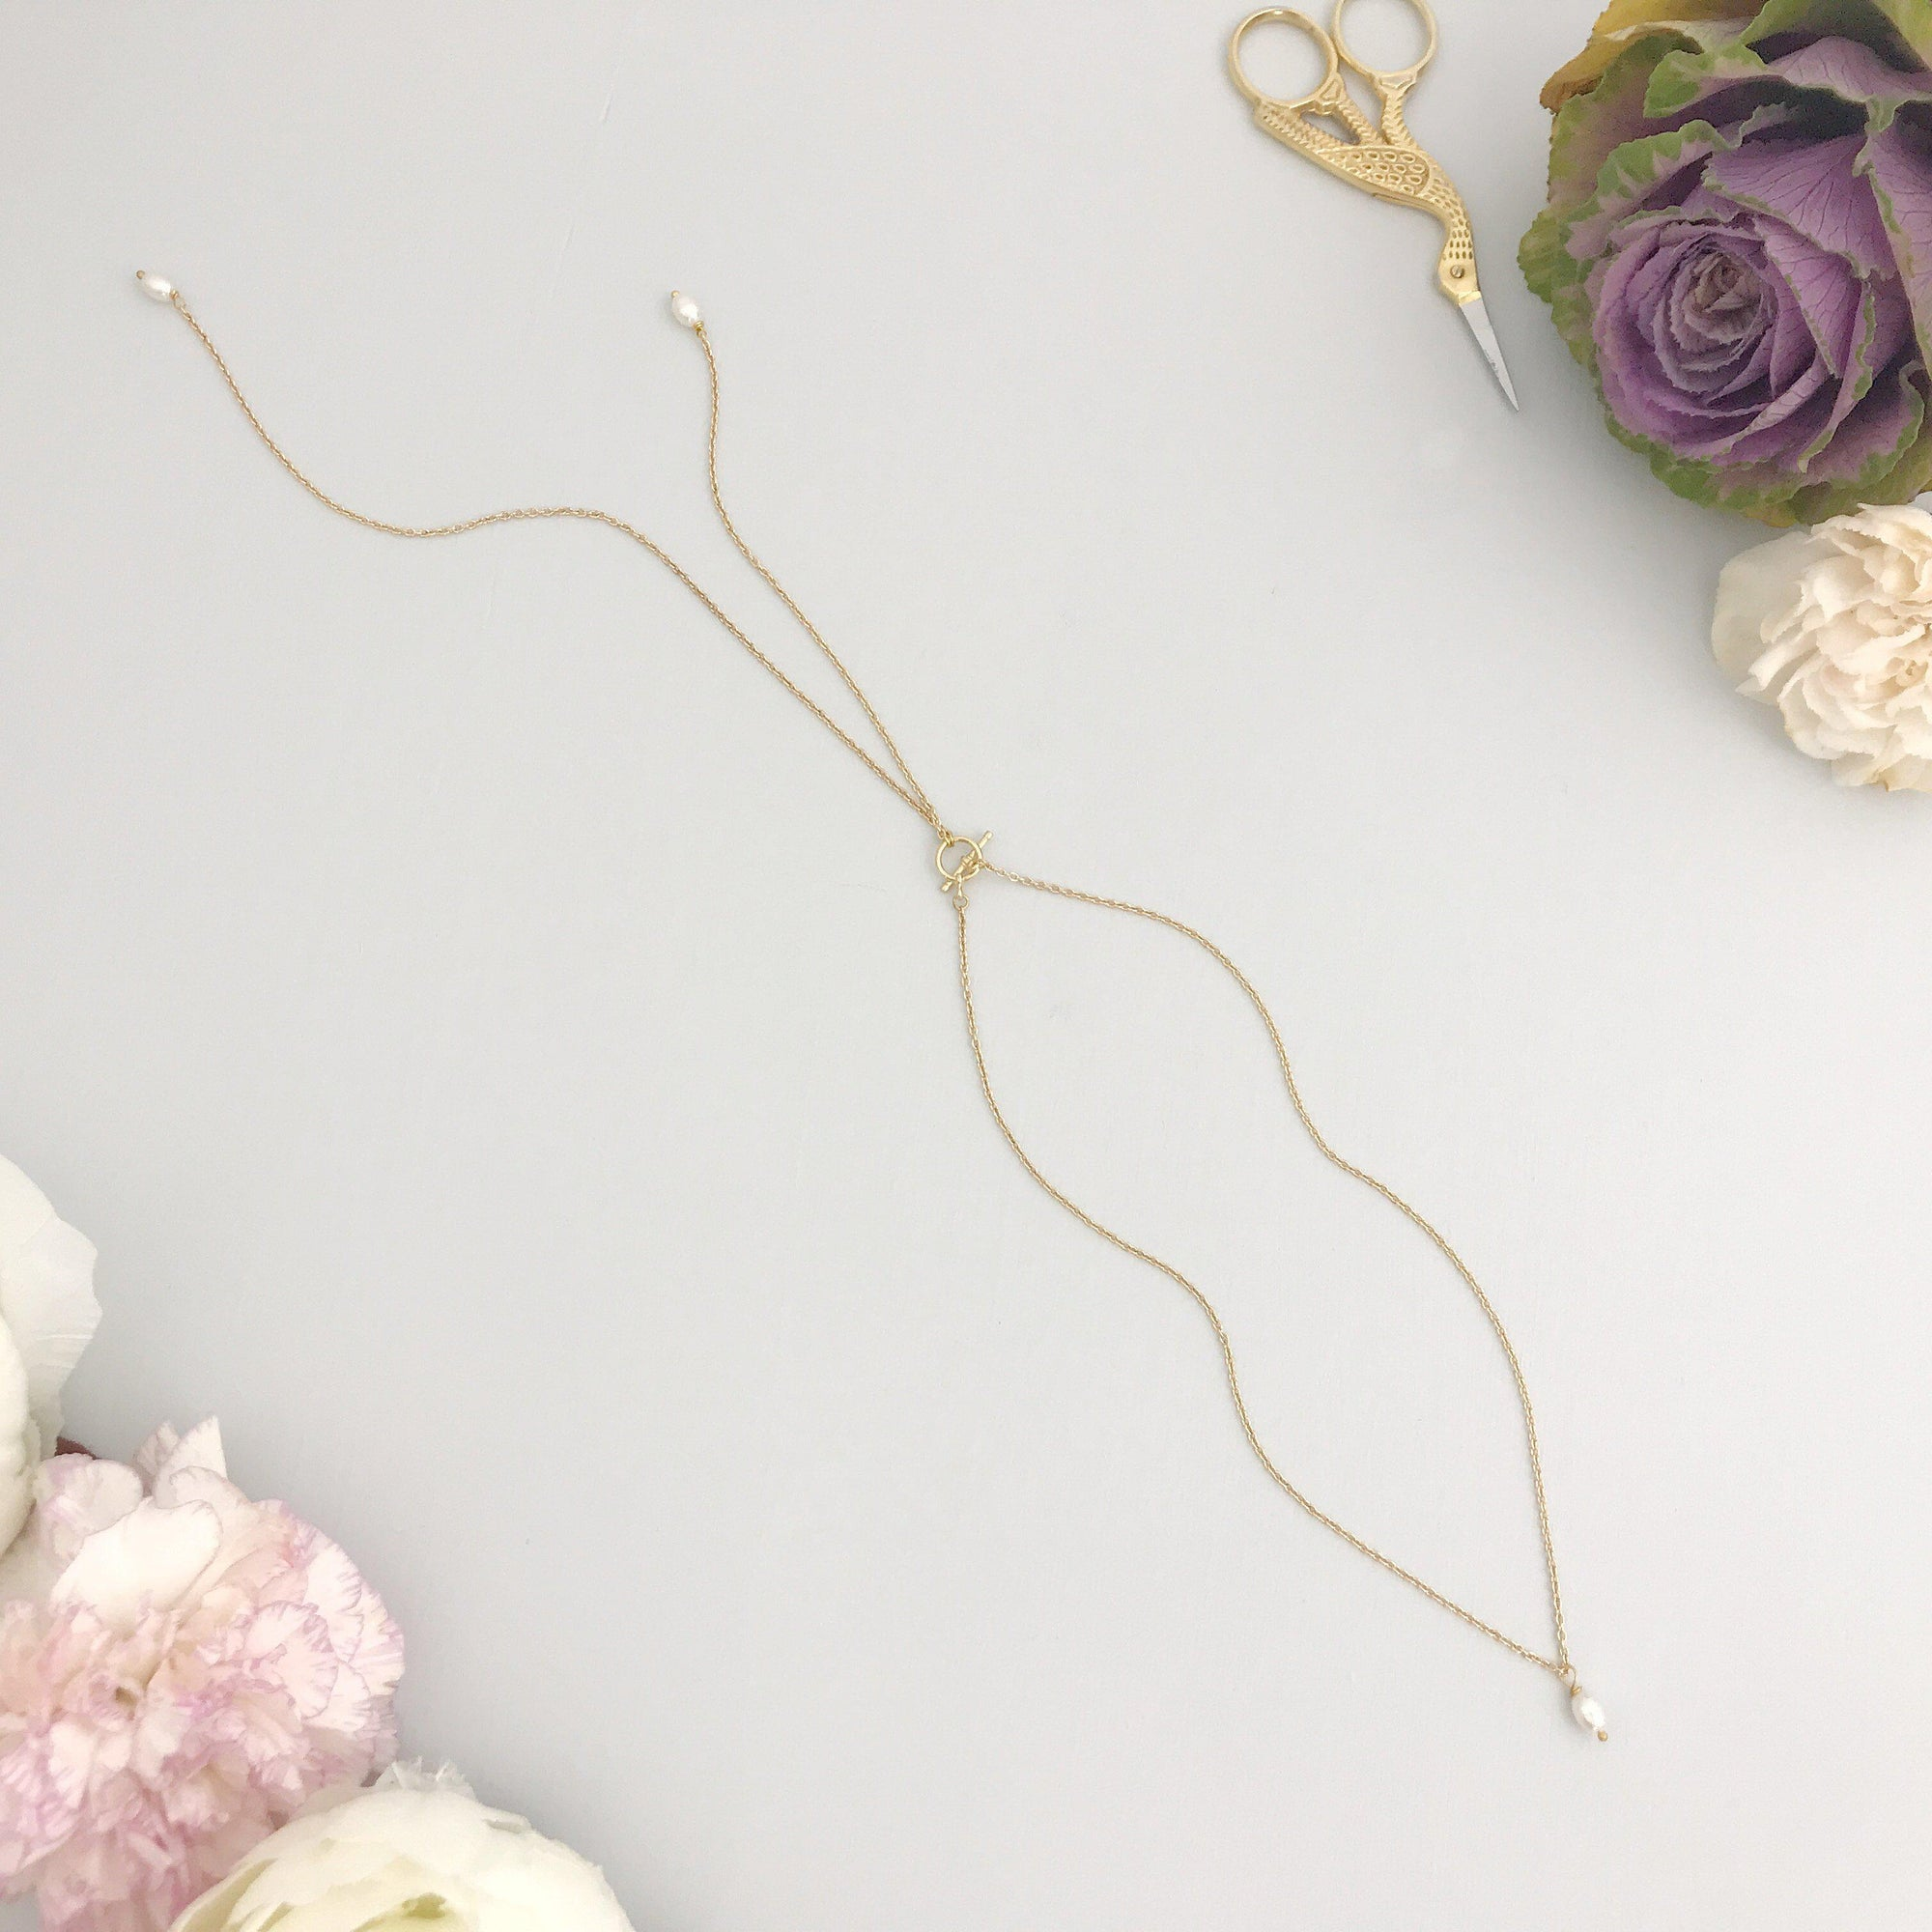 Our New Gold Pearl Back Drop Necklace Lariat for Wedding - 'Charlotte'